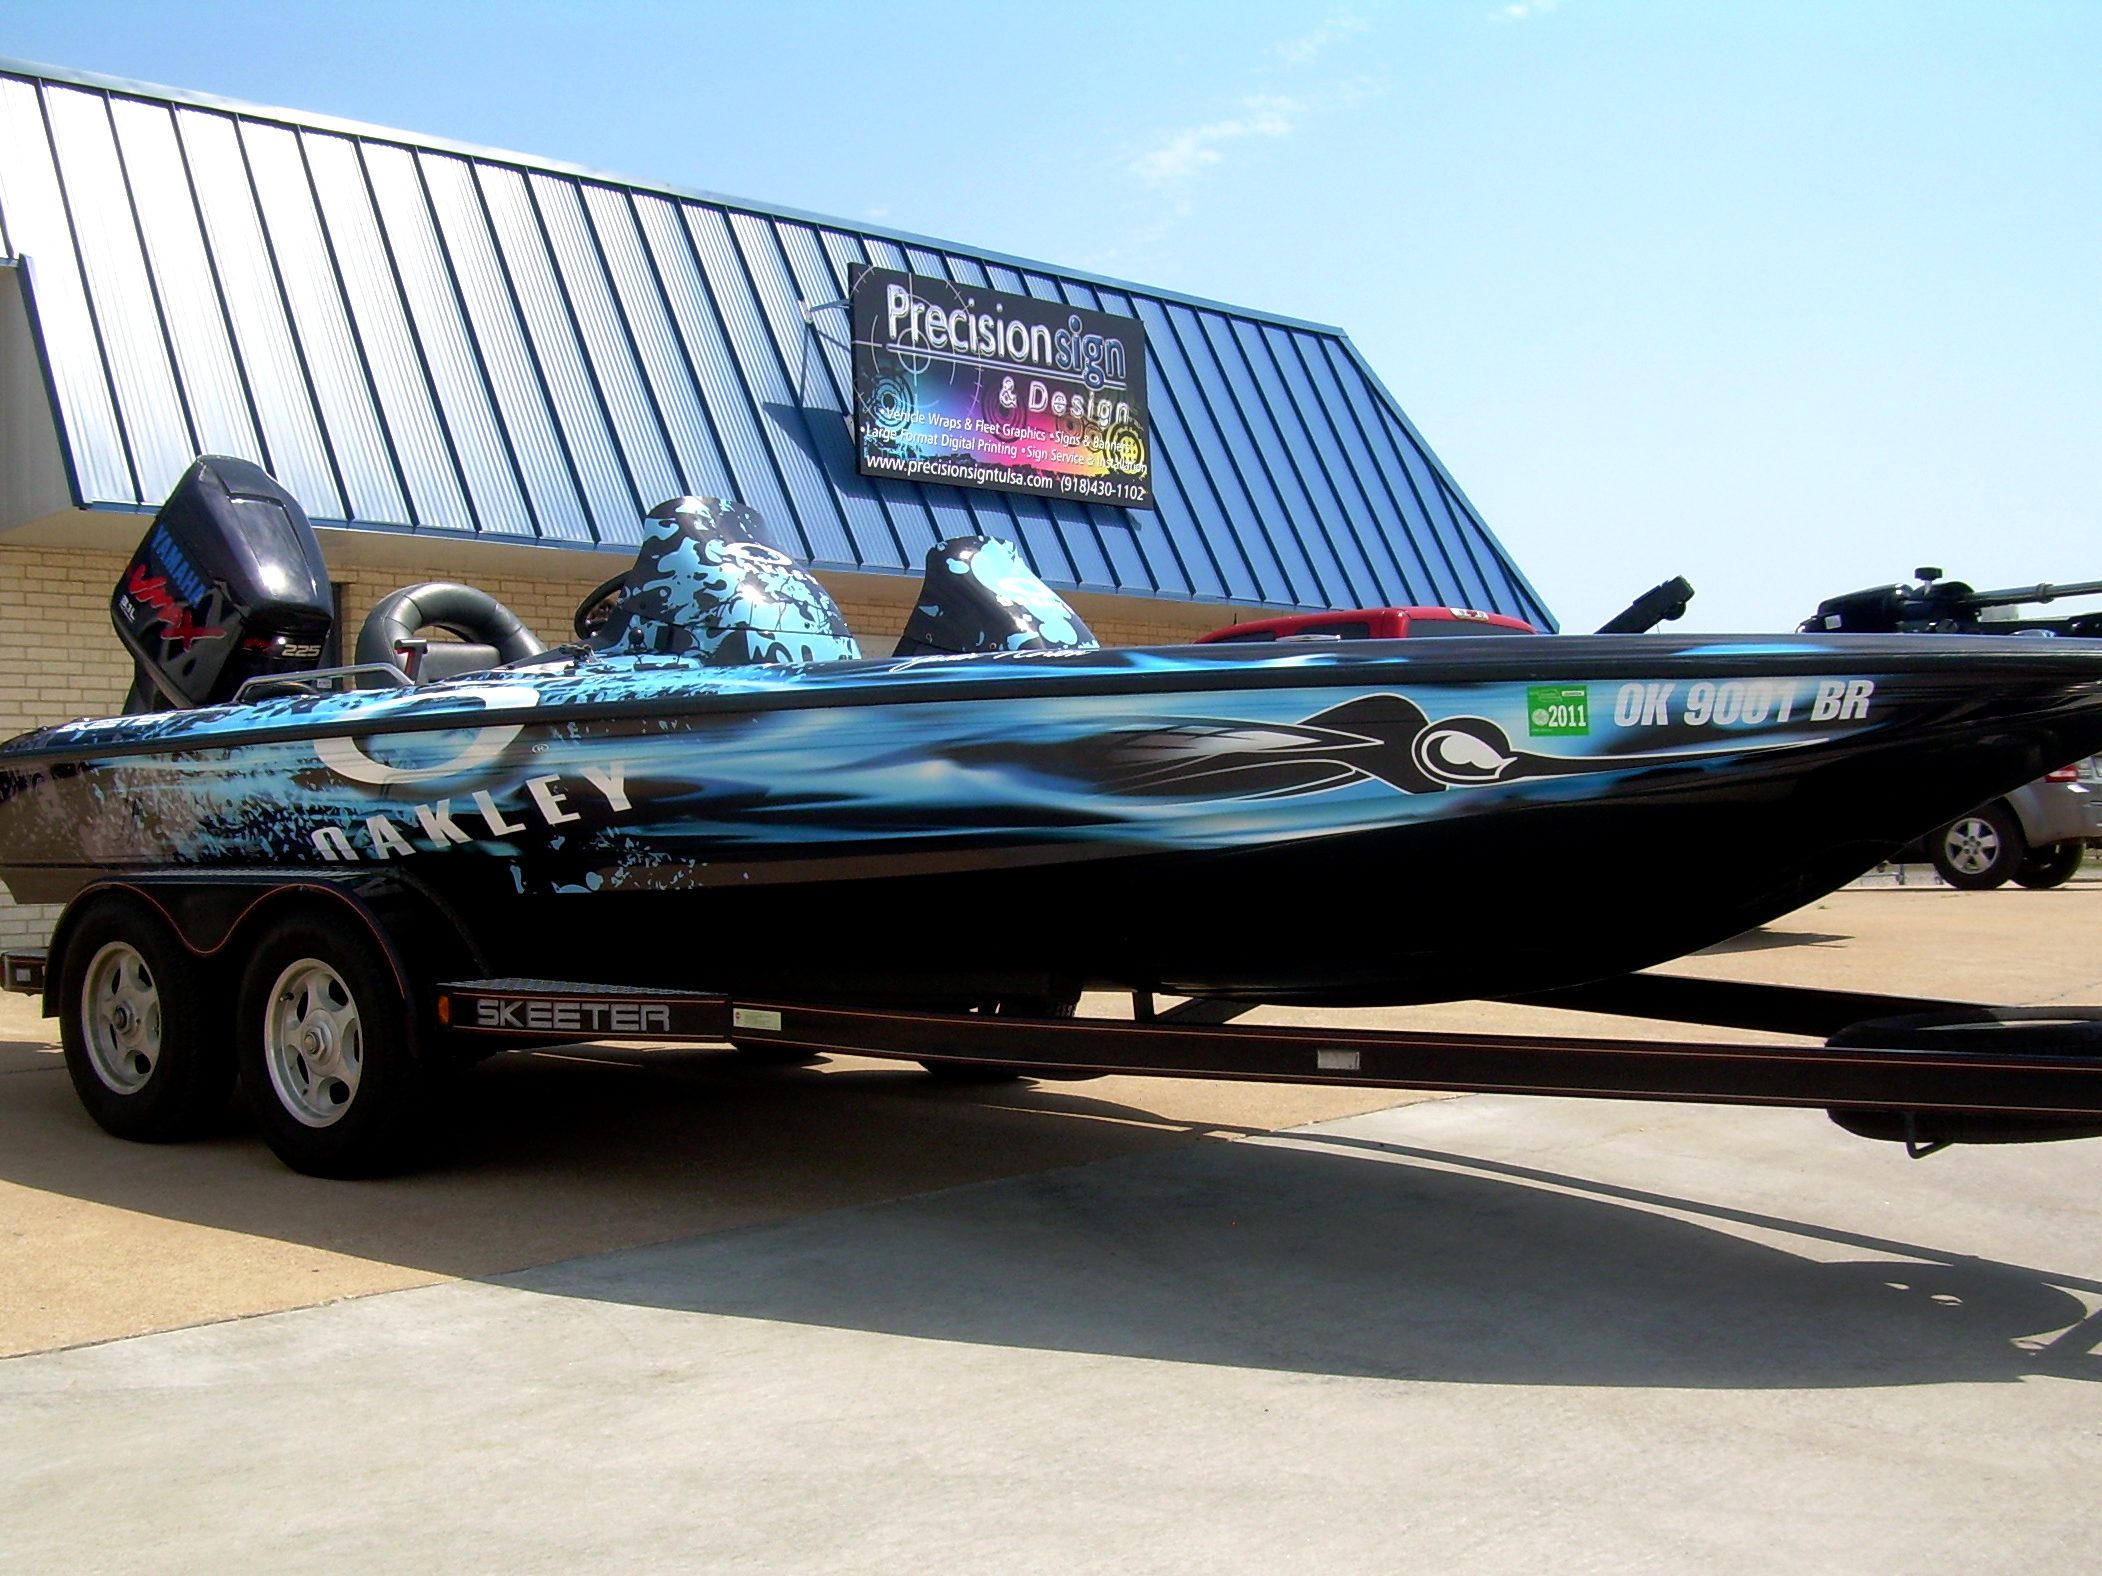 Bass Boat Wraps Precision Sign Design